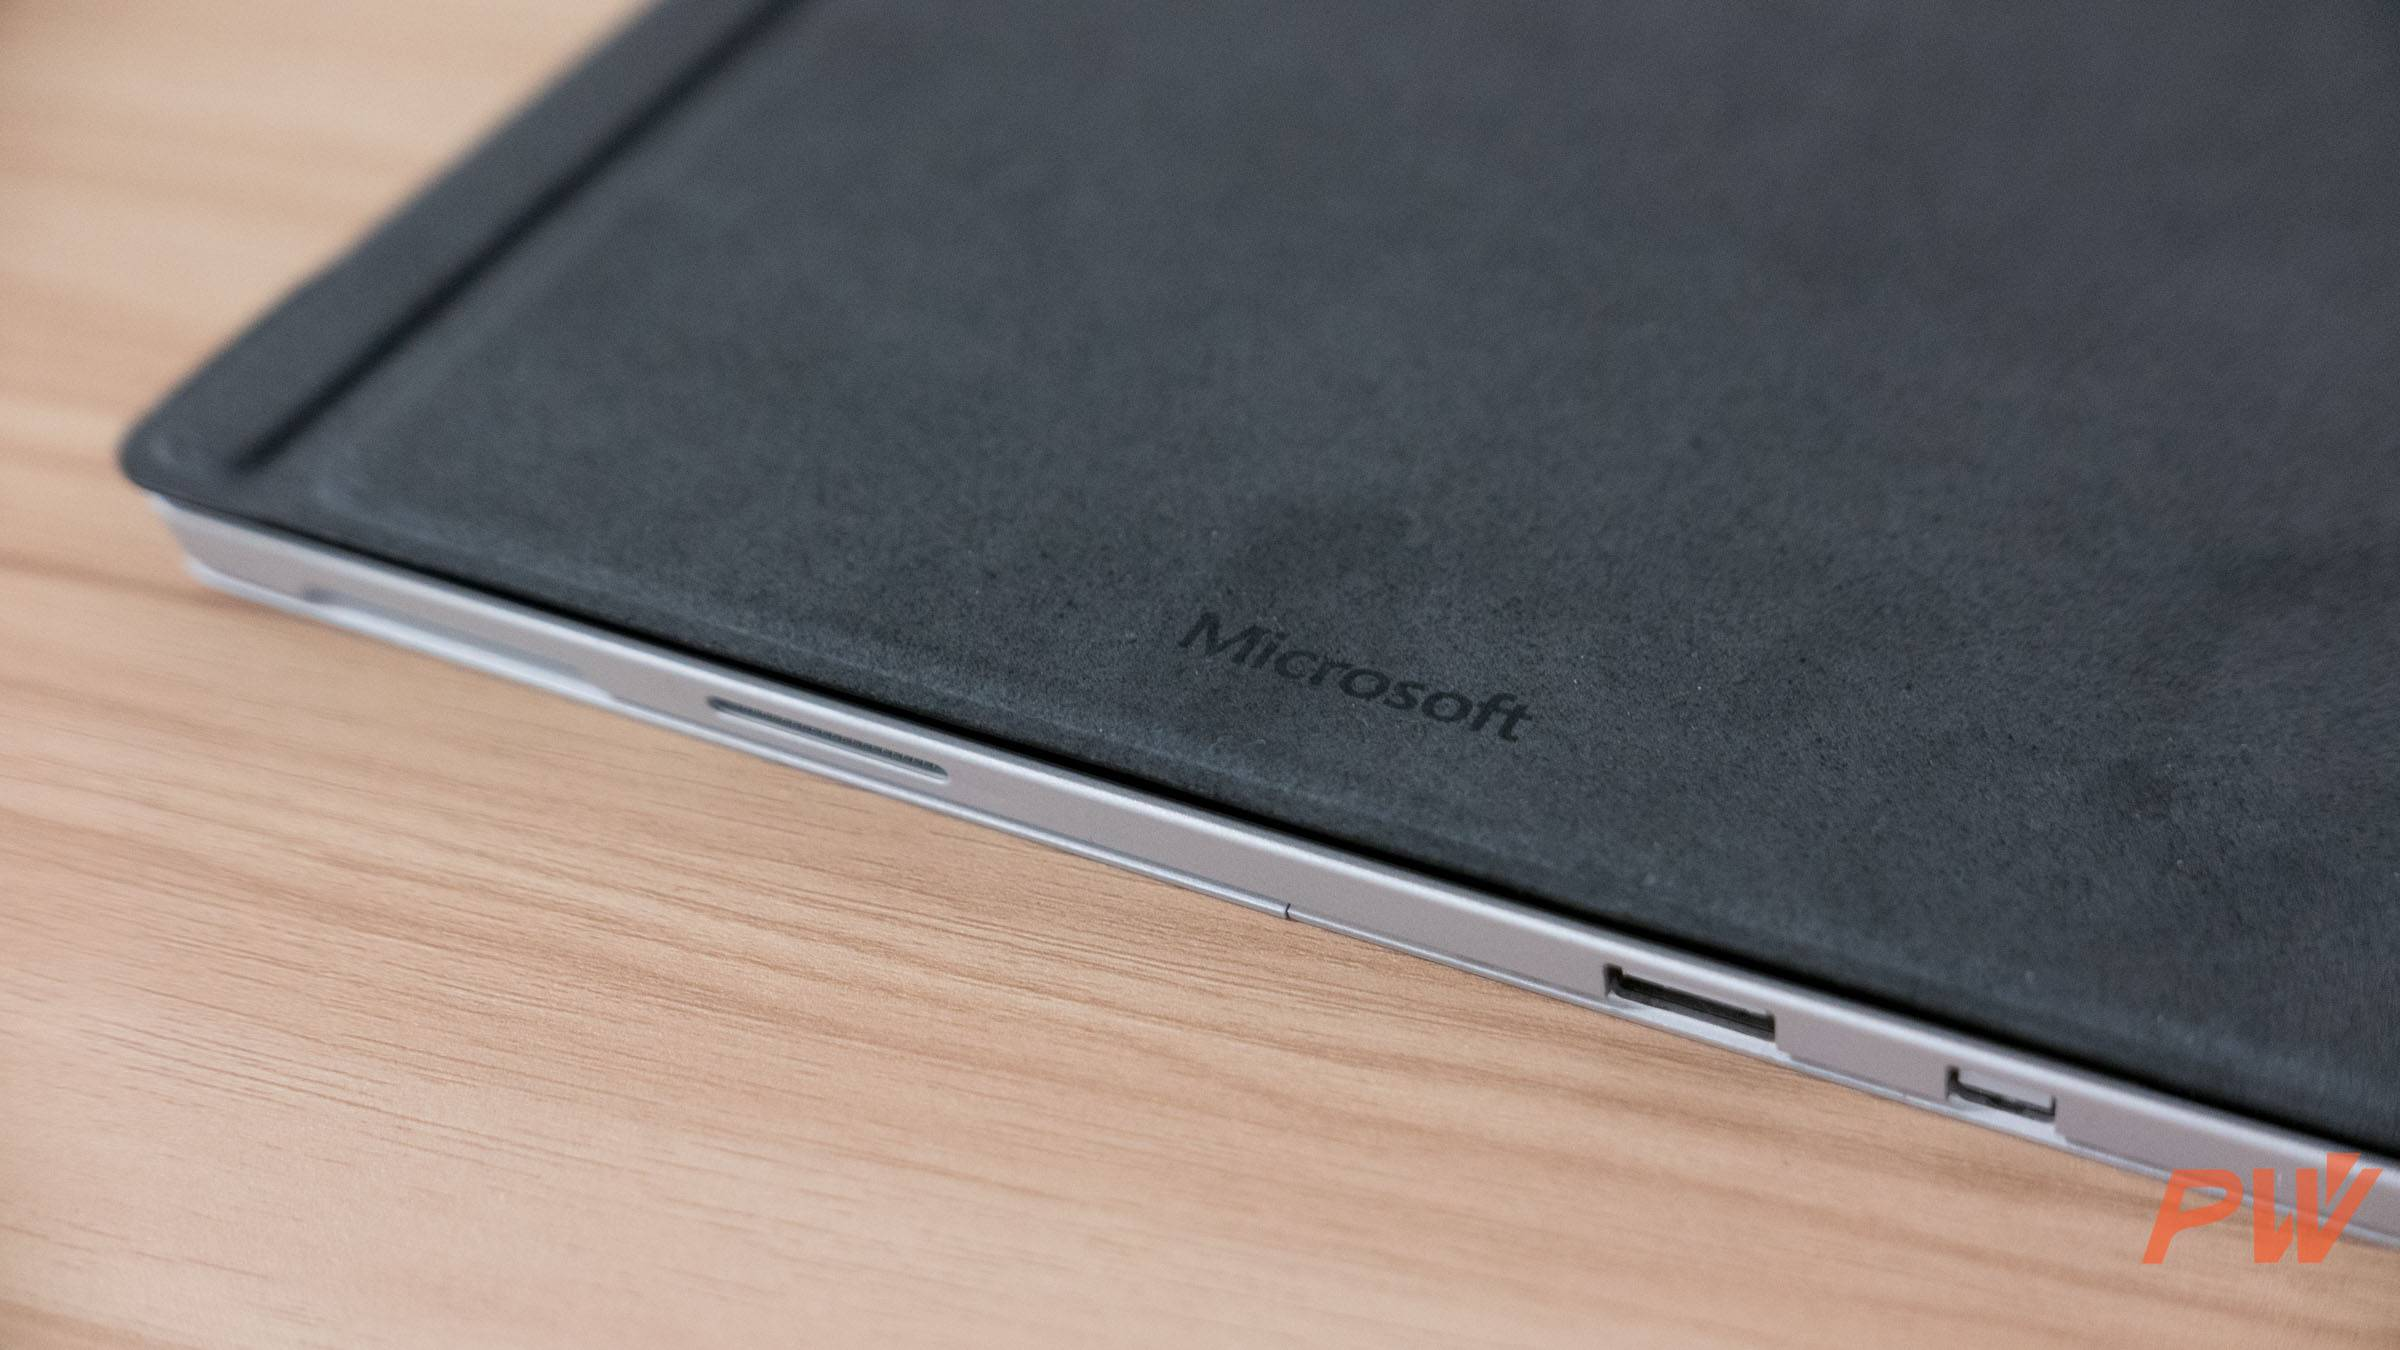 Microsoft Surface Pro 4 type cover with finger print PingWest Photo By Hao Ying-6